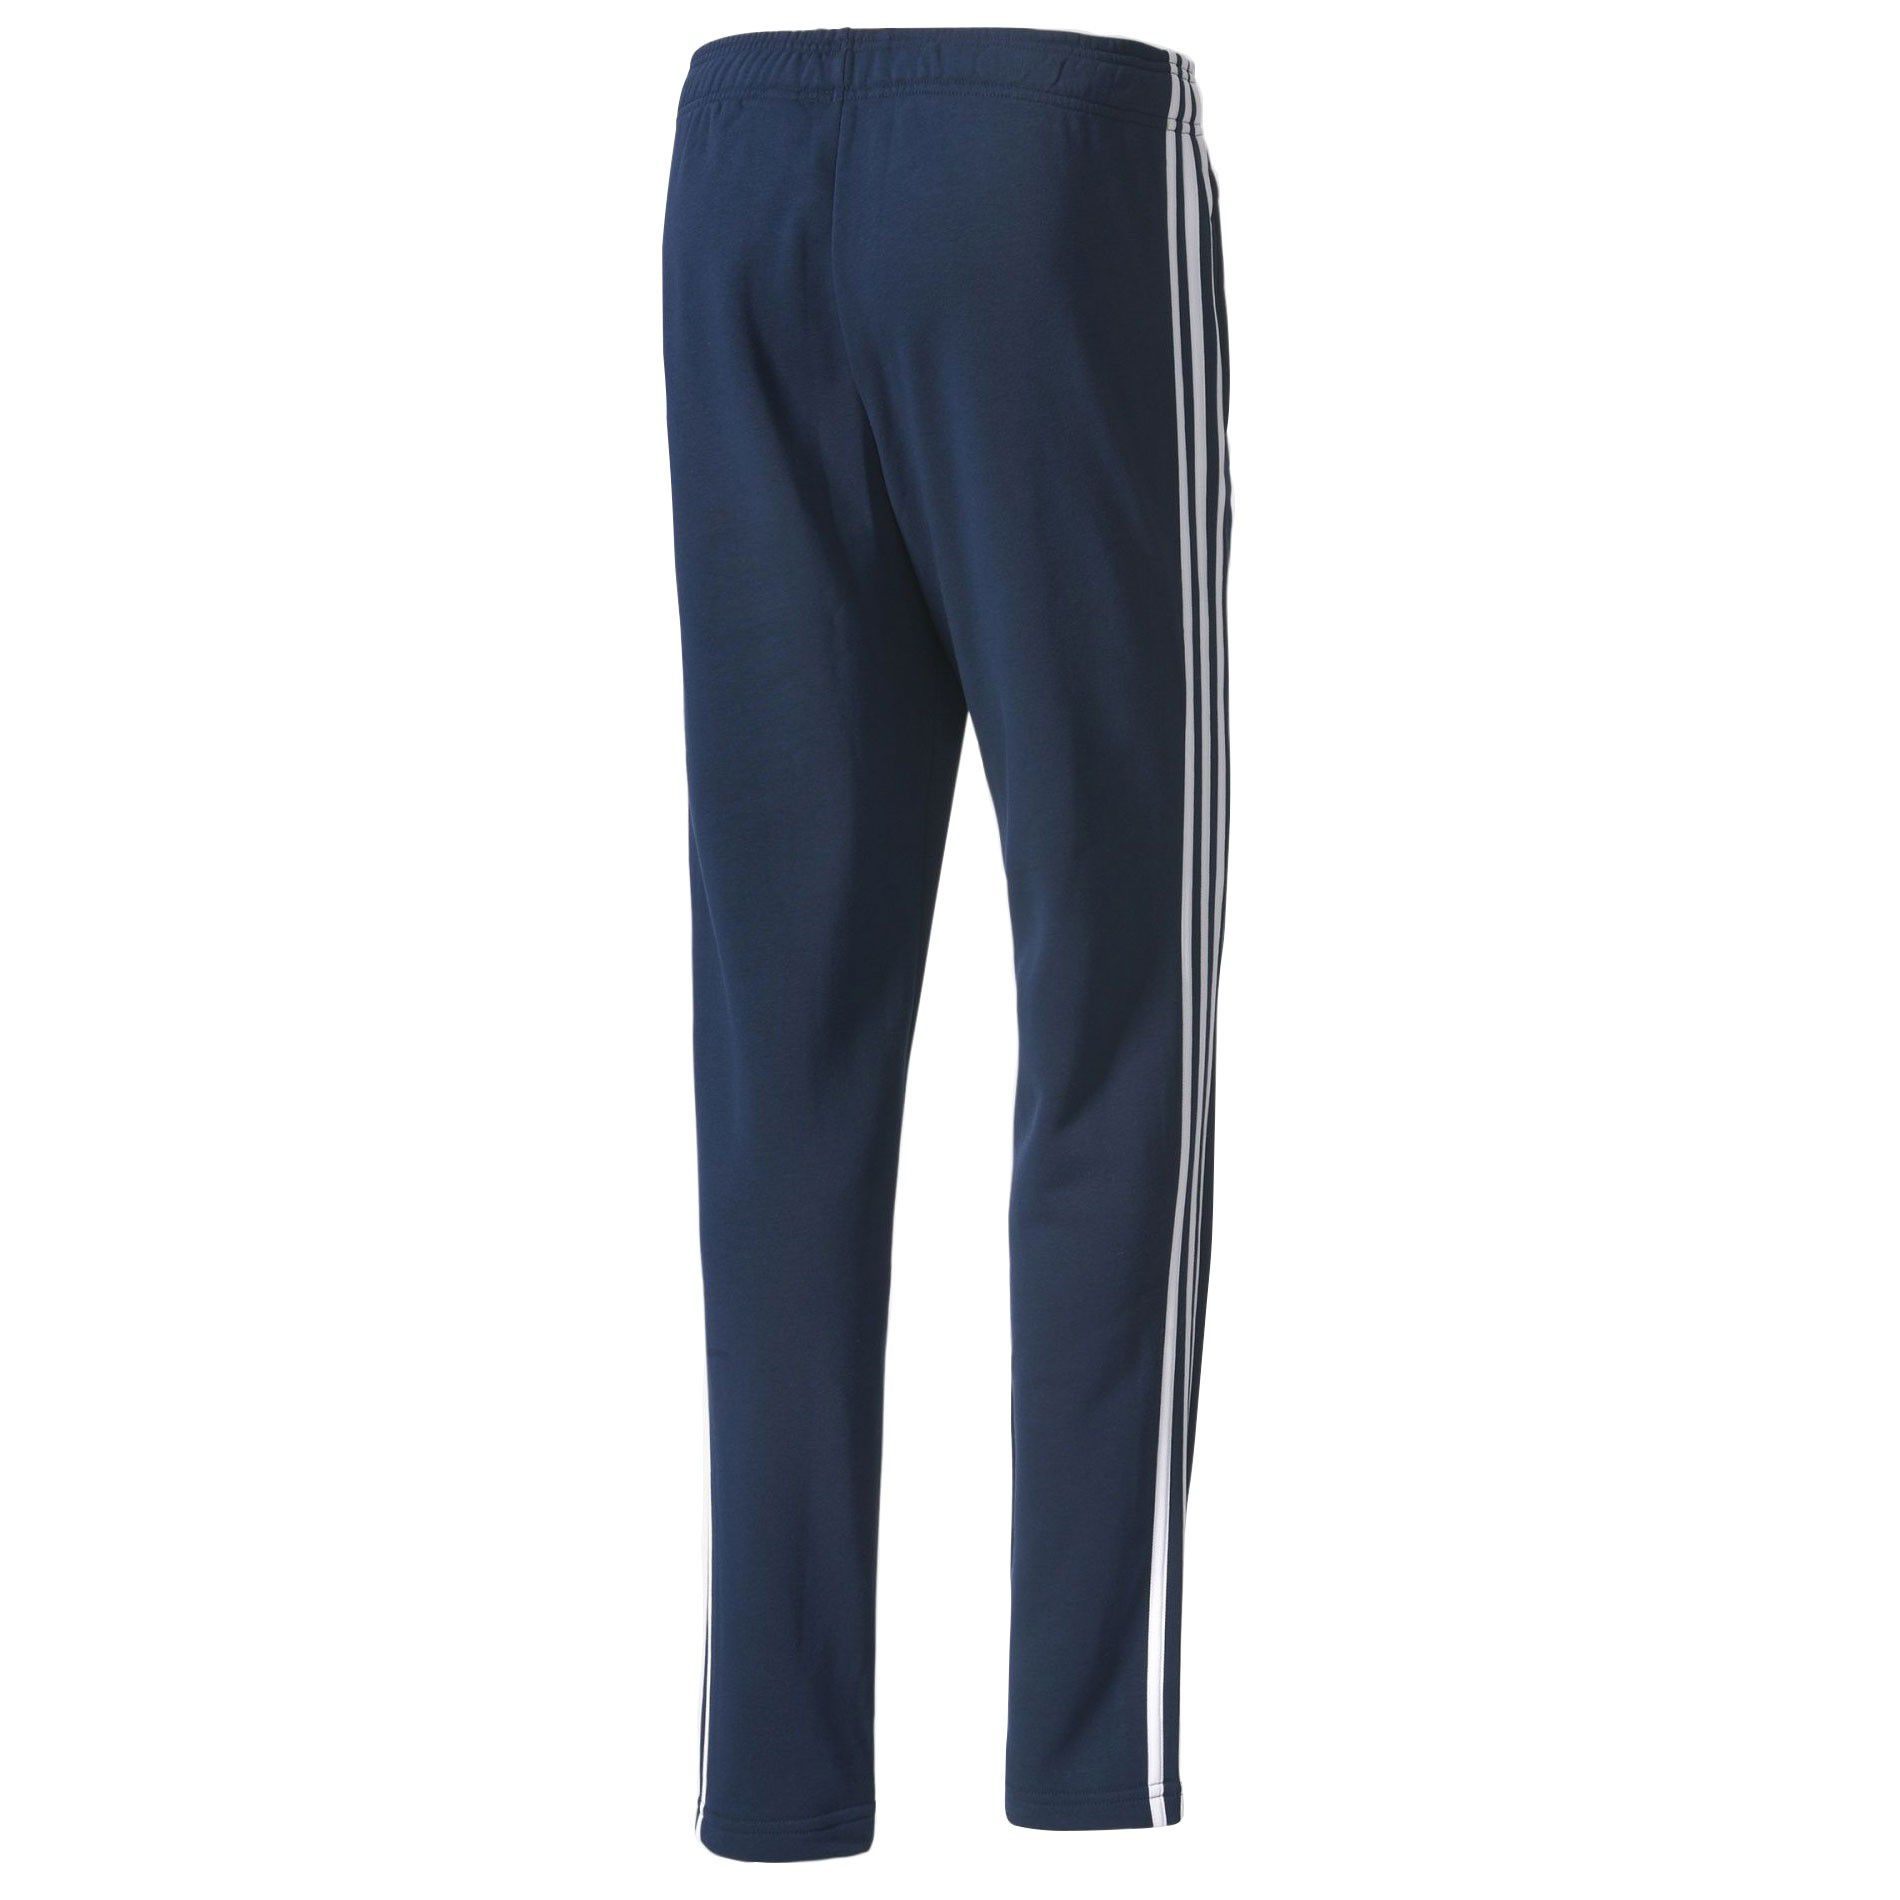 Calça Adidas Essentials 3-Stripes